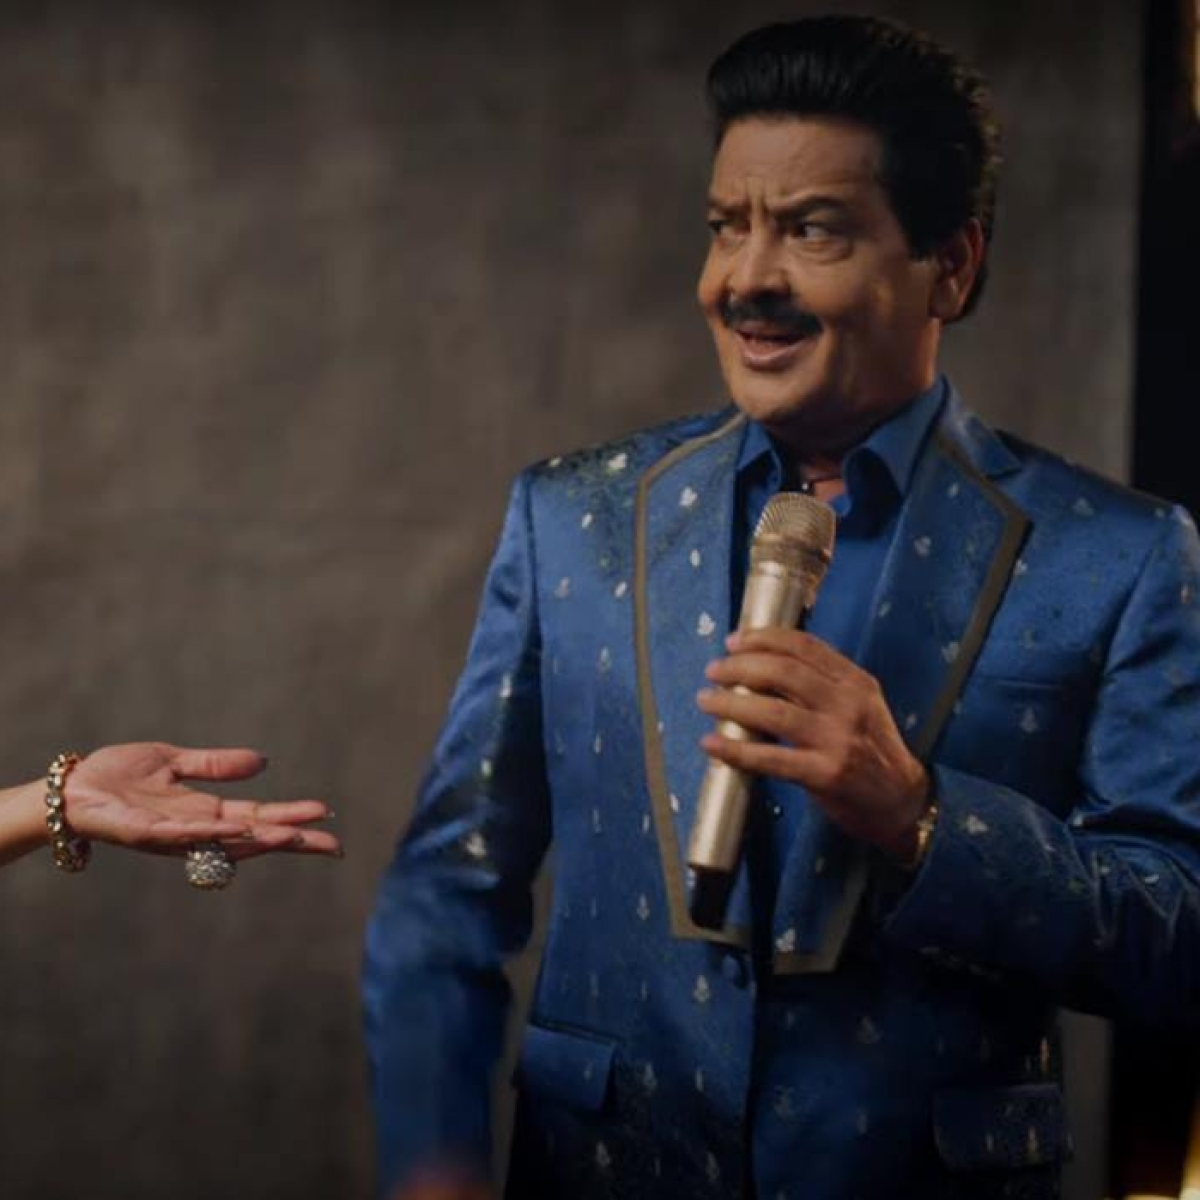 Udit Narayan joins Twitter to share his CRED 'auditions' with Alka Yagnik, only to be 'rejected'